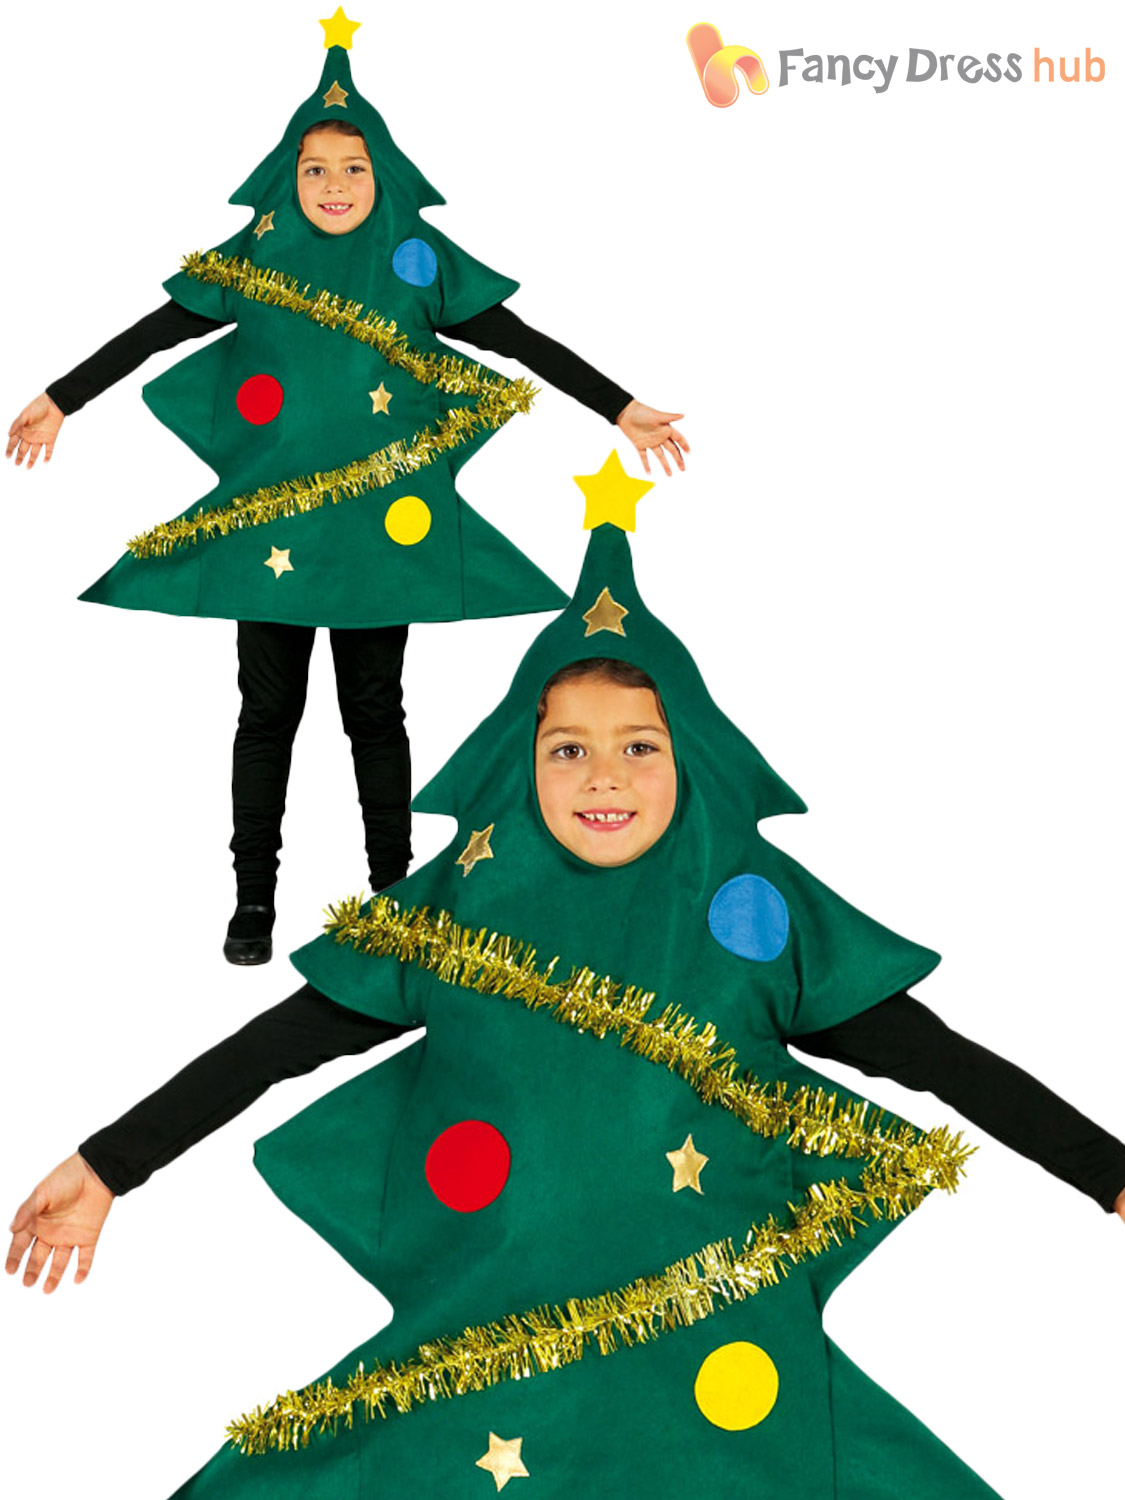 Christmas Tree Costume.Details About Childs Christmas Tree Costume Boys Girls Novelty Xmas Fancy Dress Kids Outfit